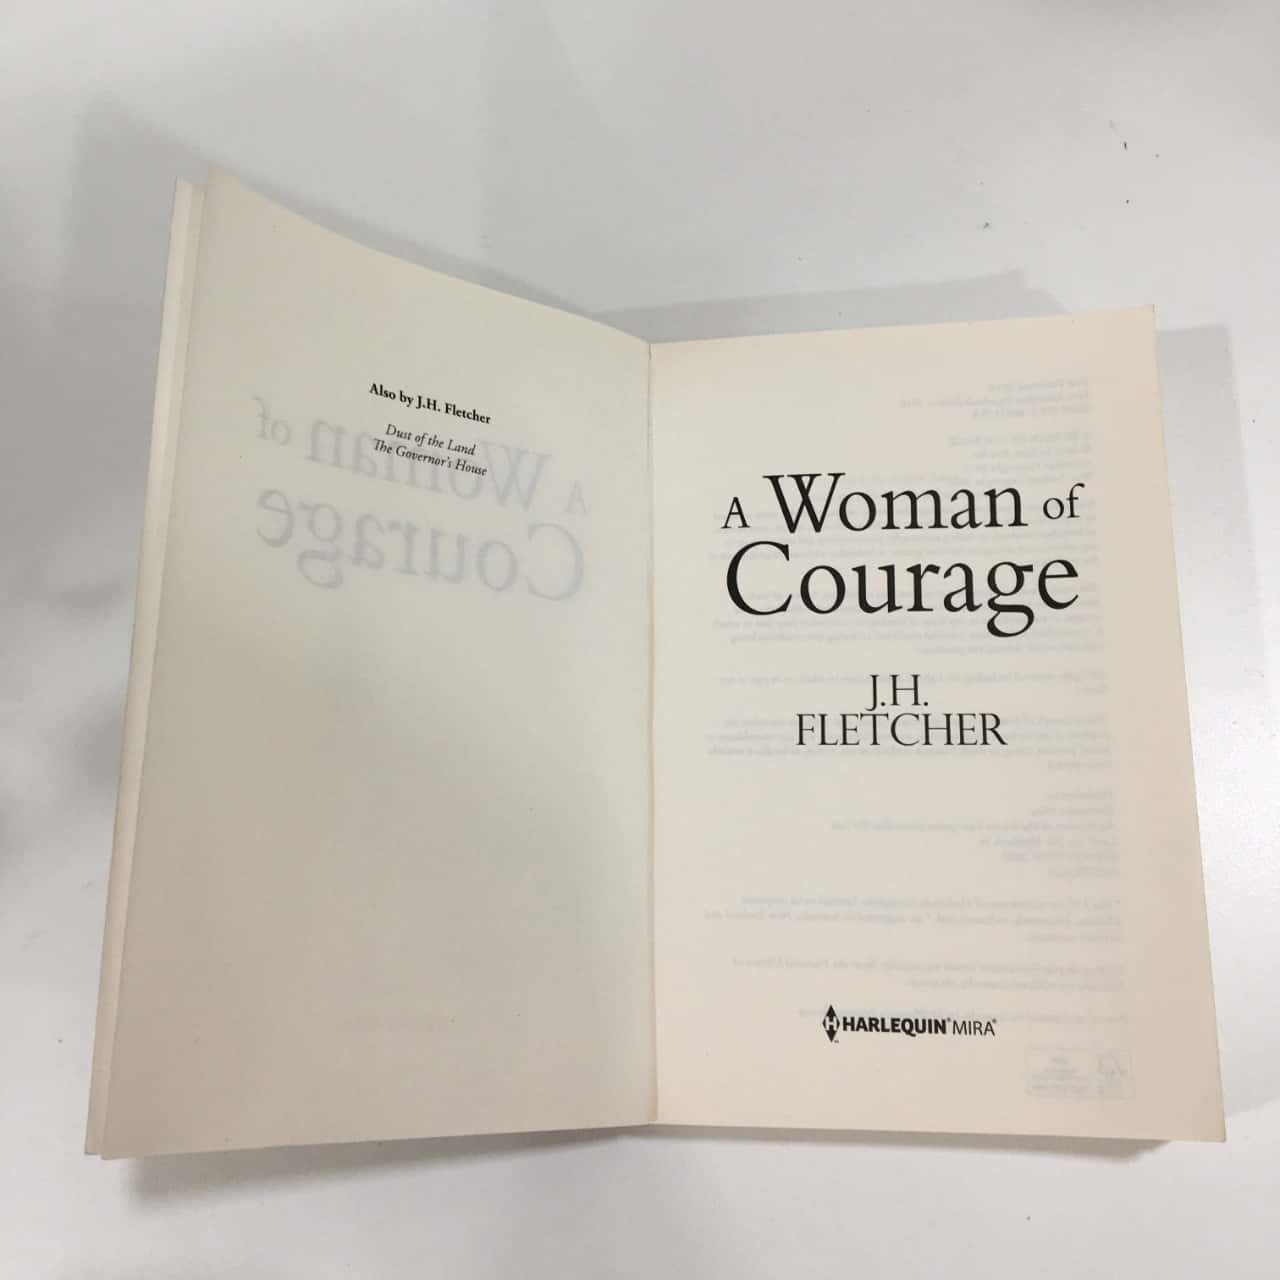 A Woman of Courage